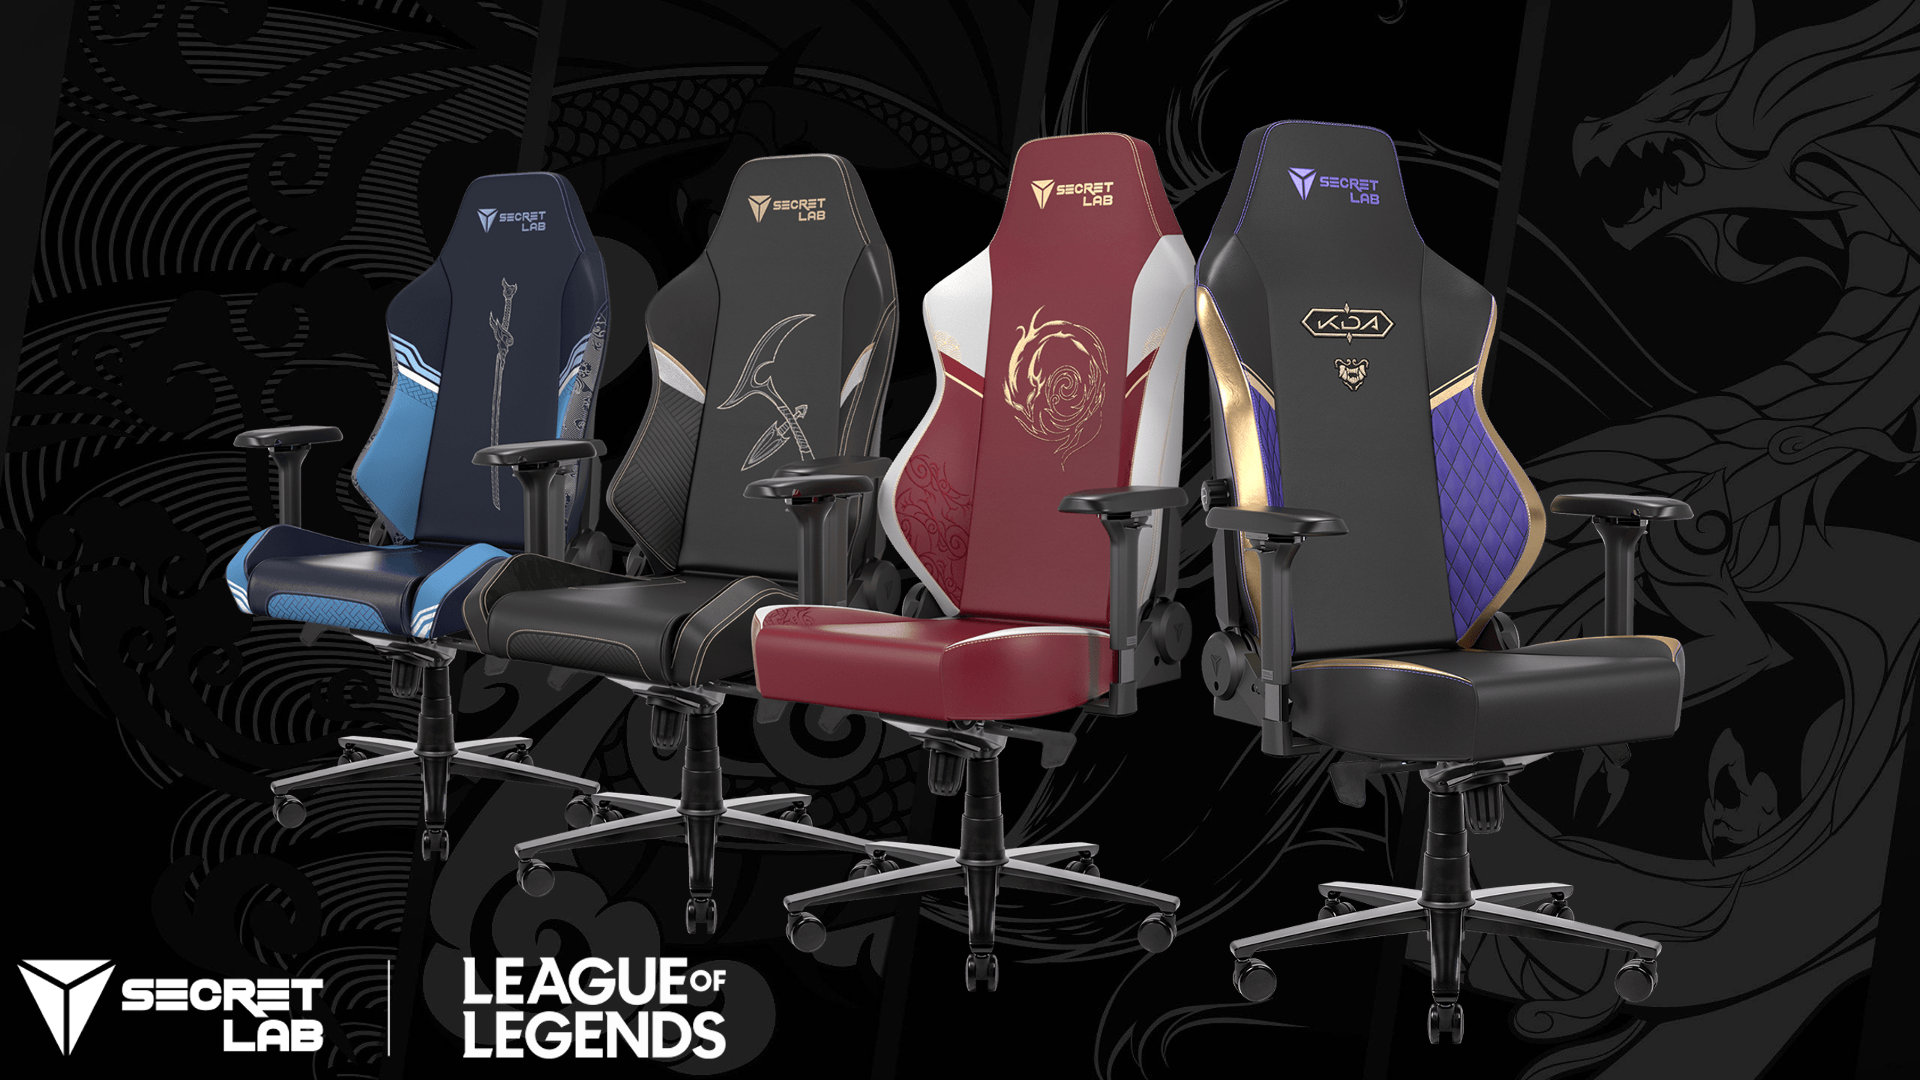 Secret Lab x League of Legends gaming chairs